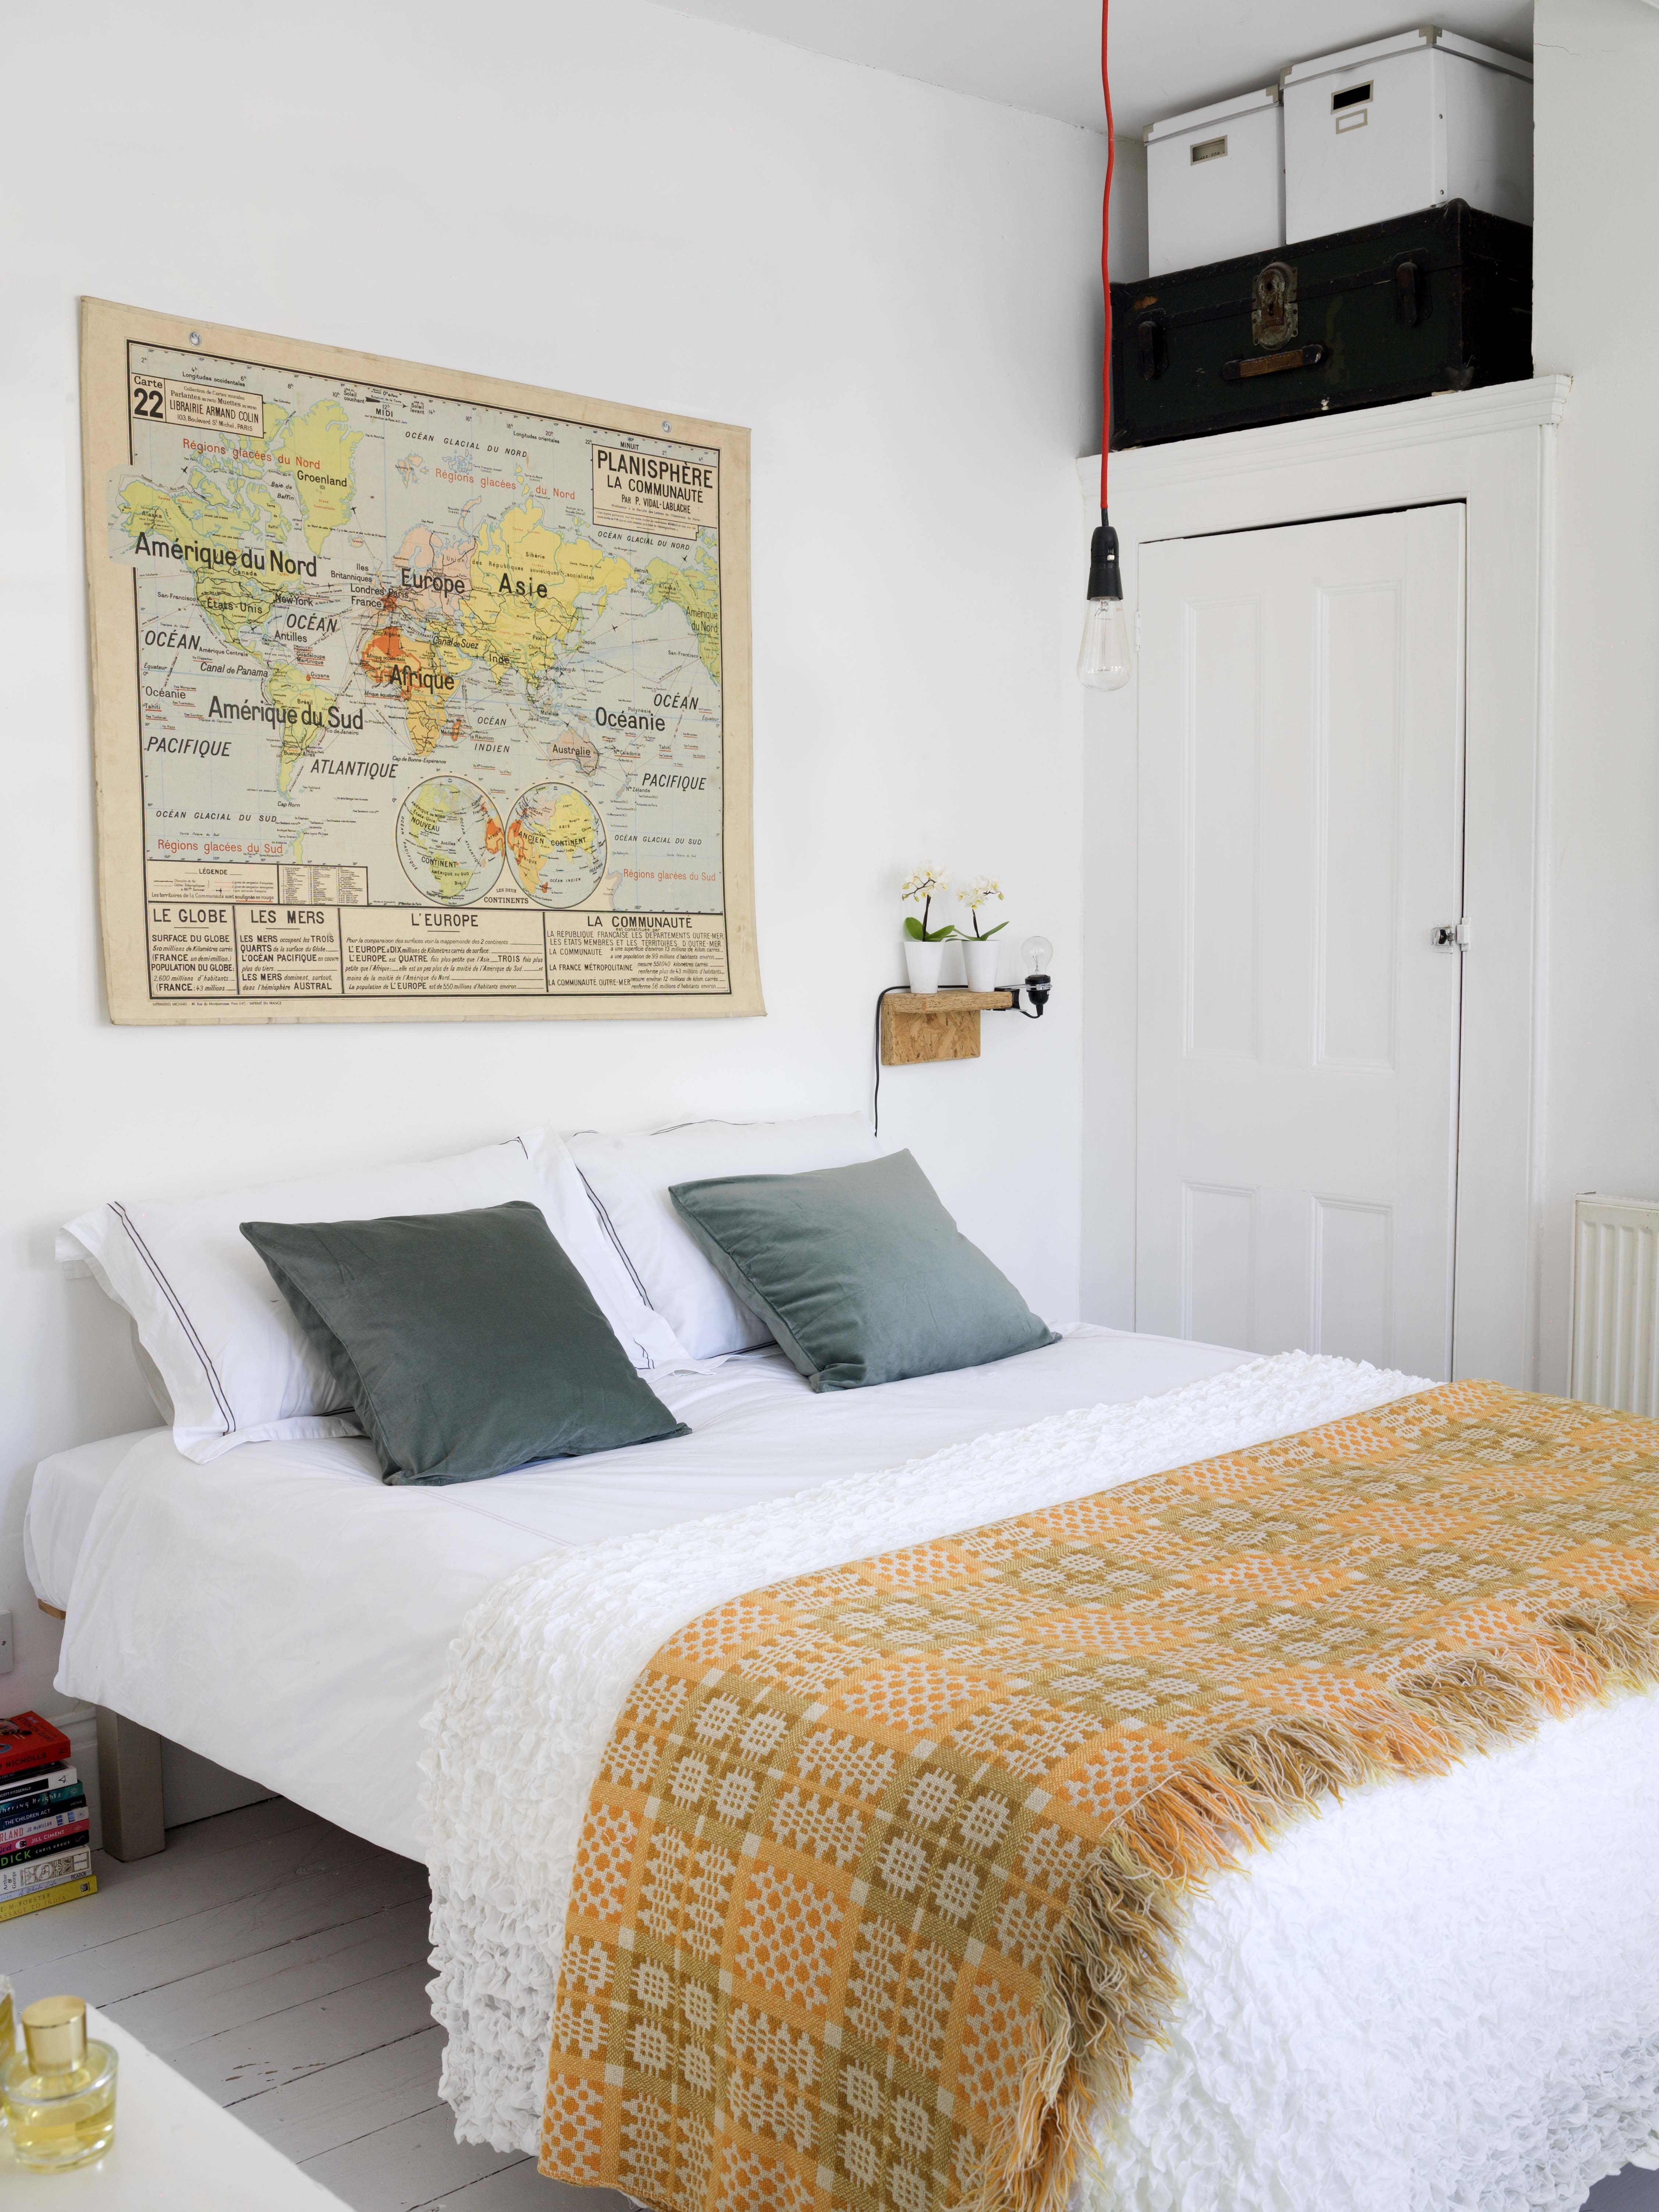 57 Bedroom Decorating Ideas , How to Design a Master Bedroom